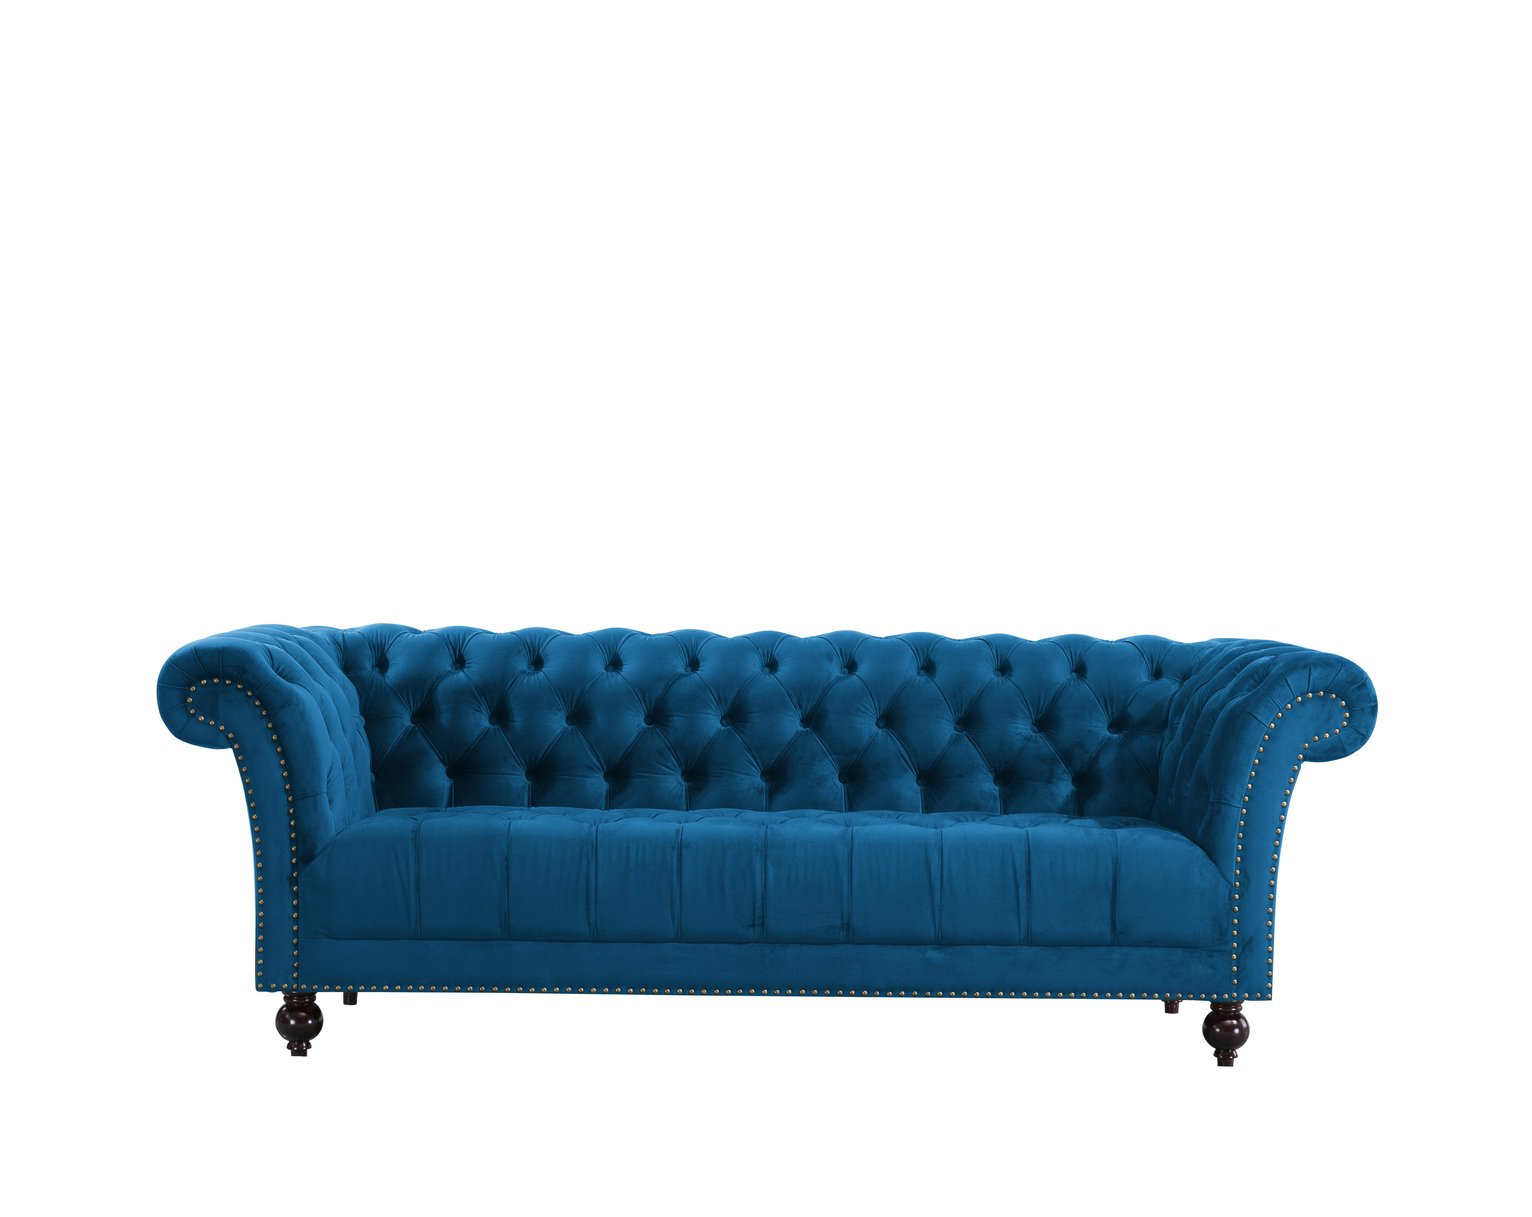 Birlea Chester 3 Seater Fabric Sofa - Blue